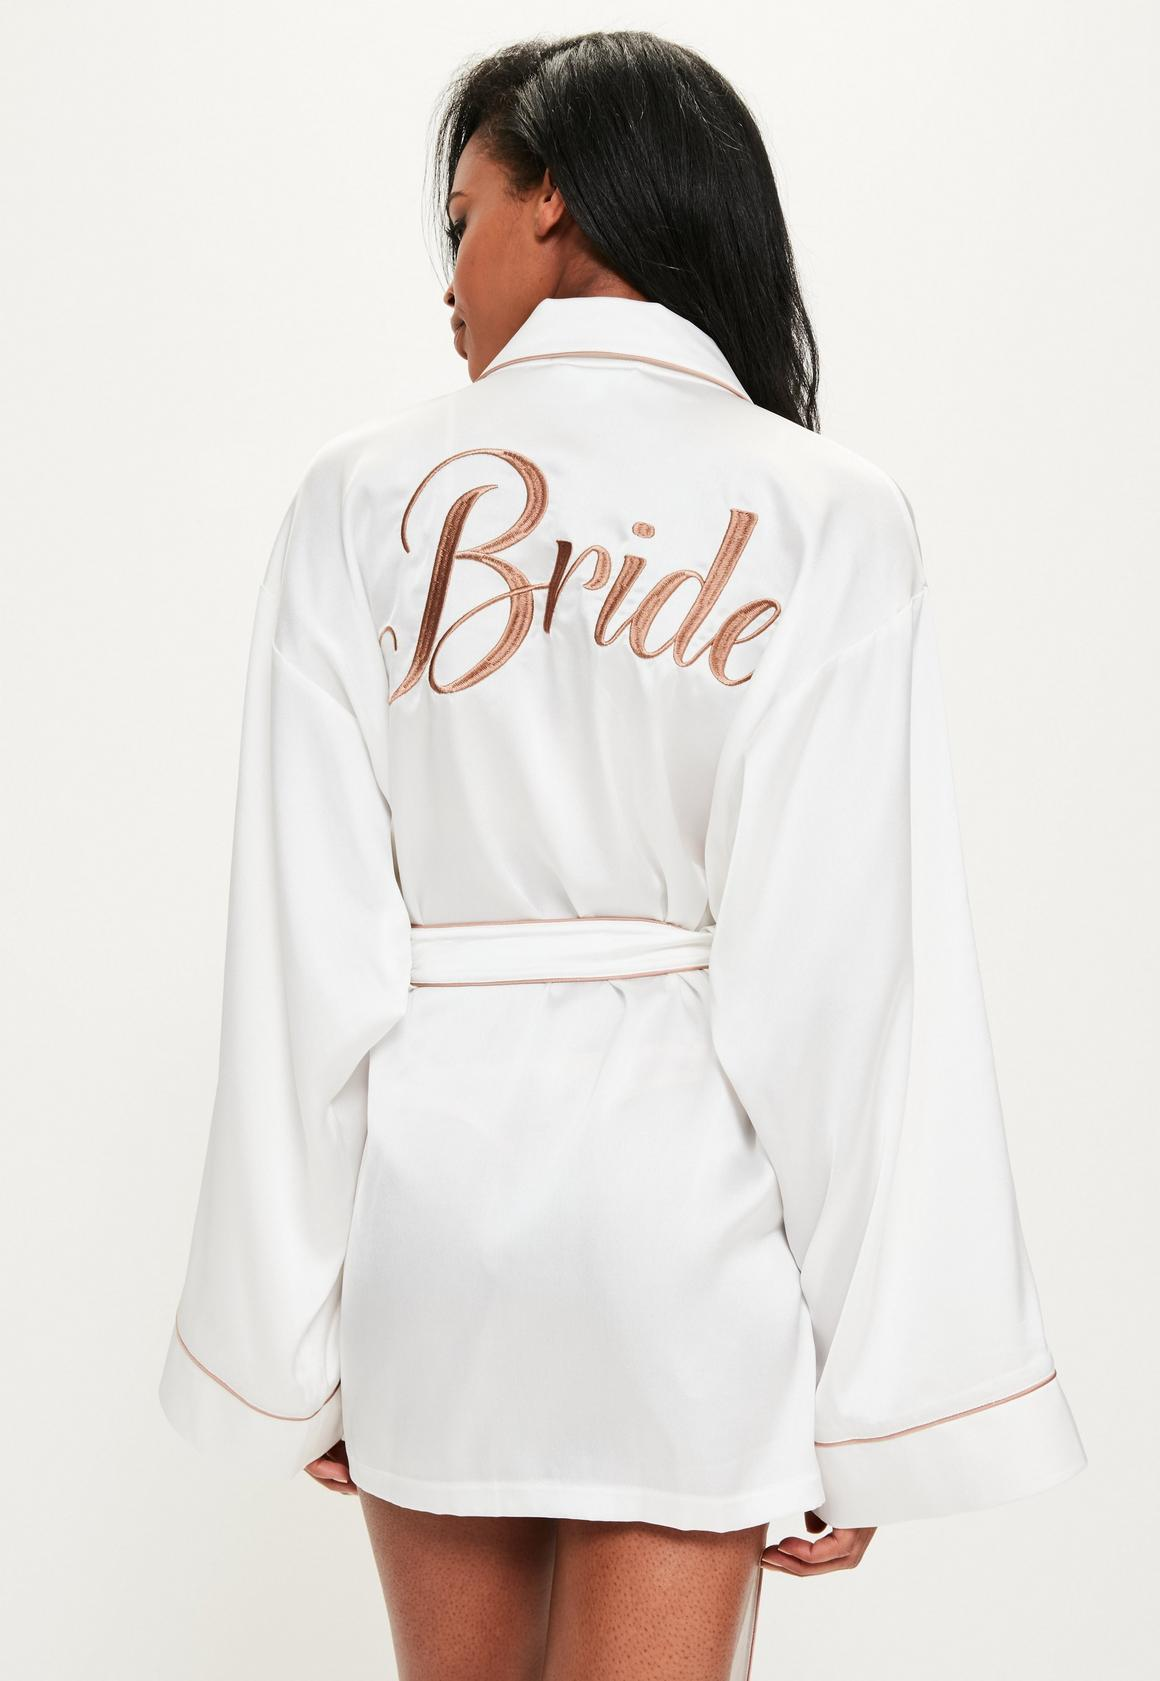 Floral Satin Robes, Bridal Robe, Personalized Robe, Bride Robes, Embroidered  Robes,